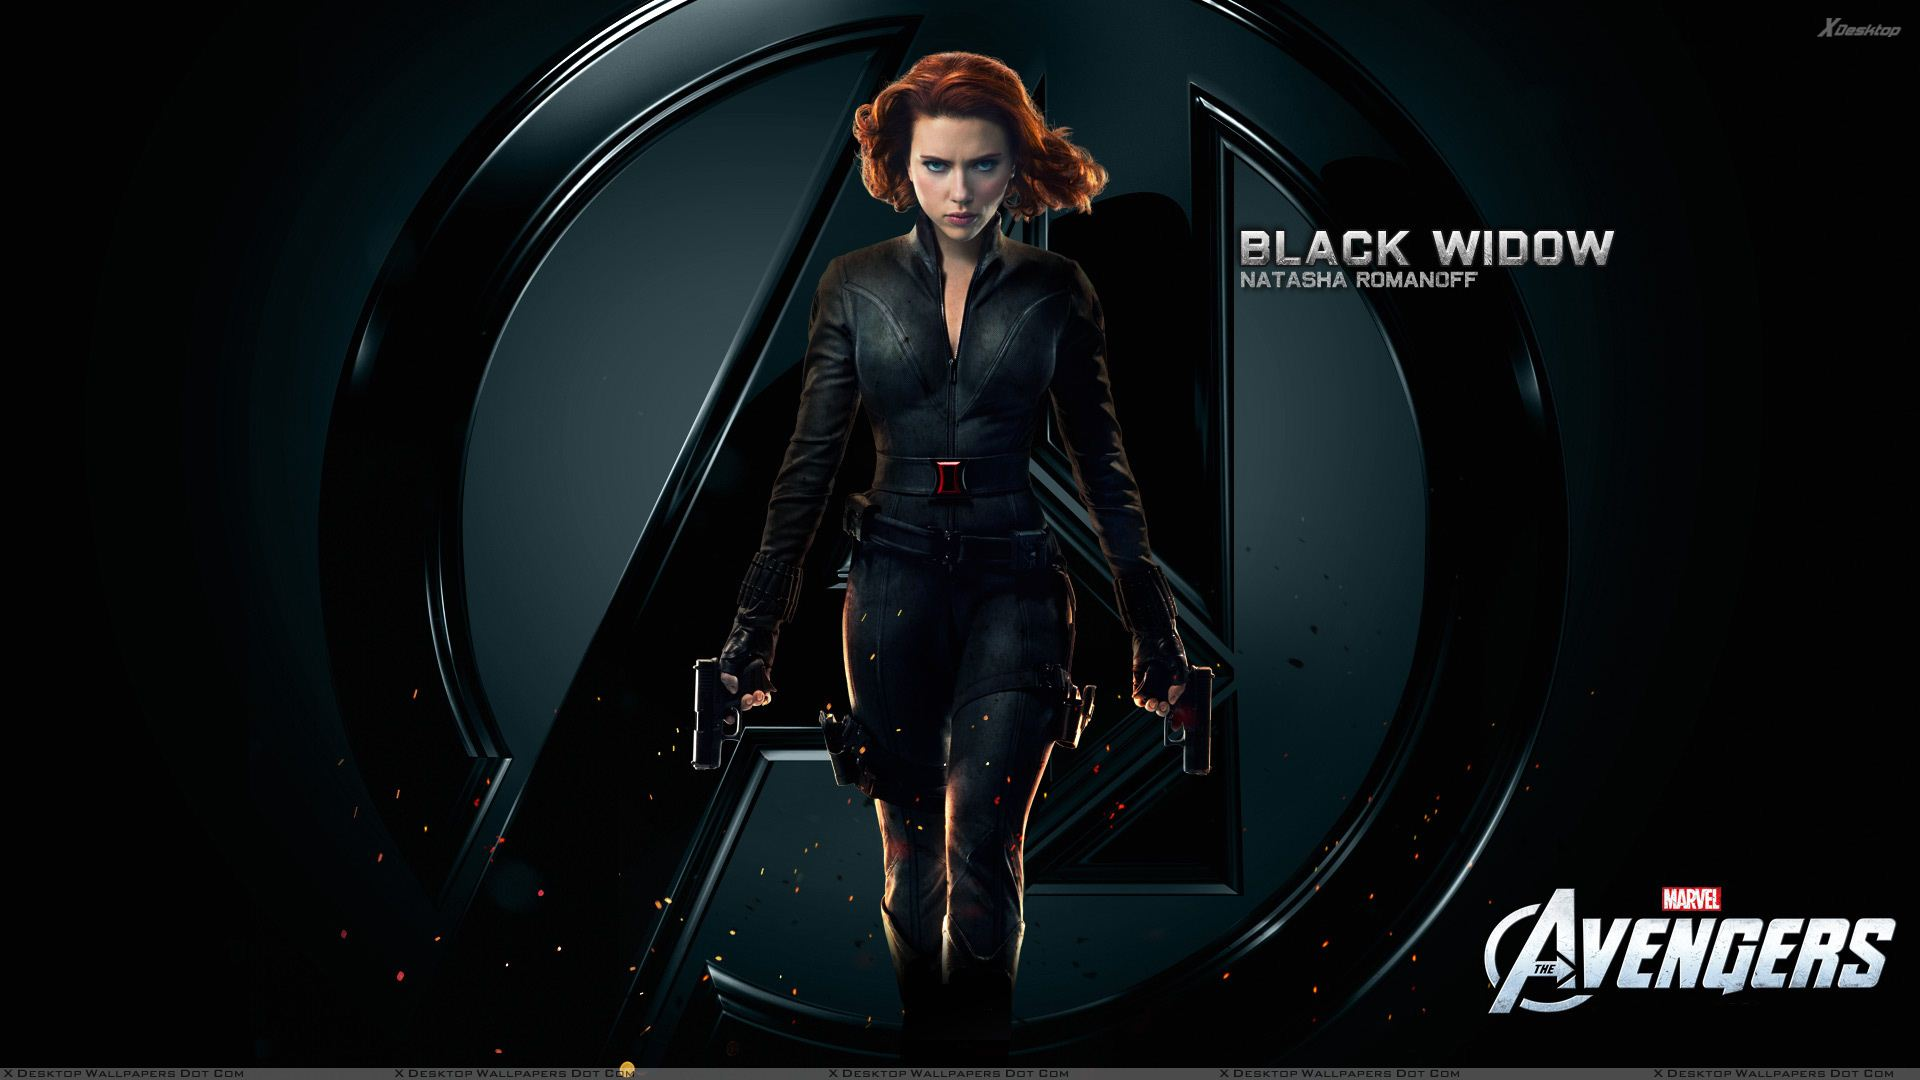 The Avengers Scarlett Johansson Black Widow Wallpaper 1920x1080